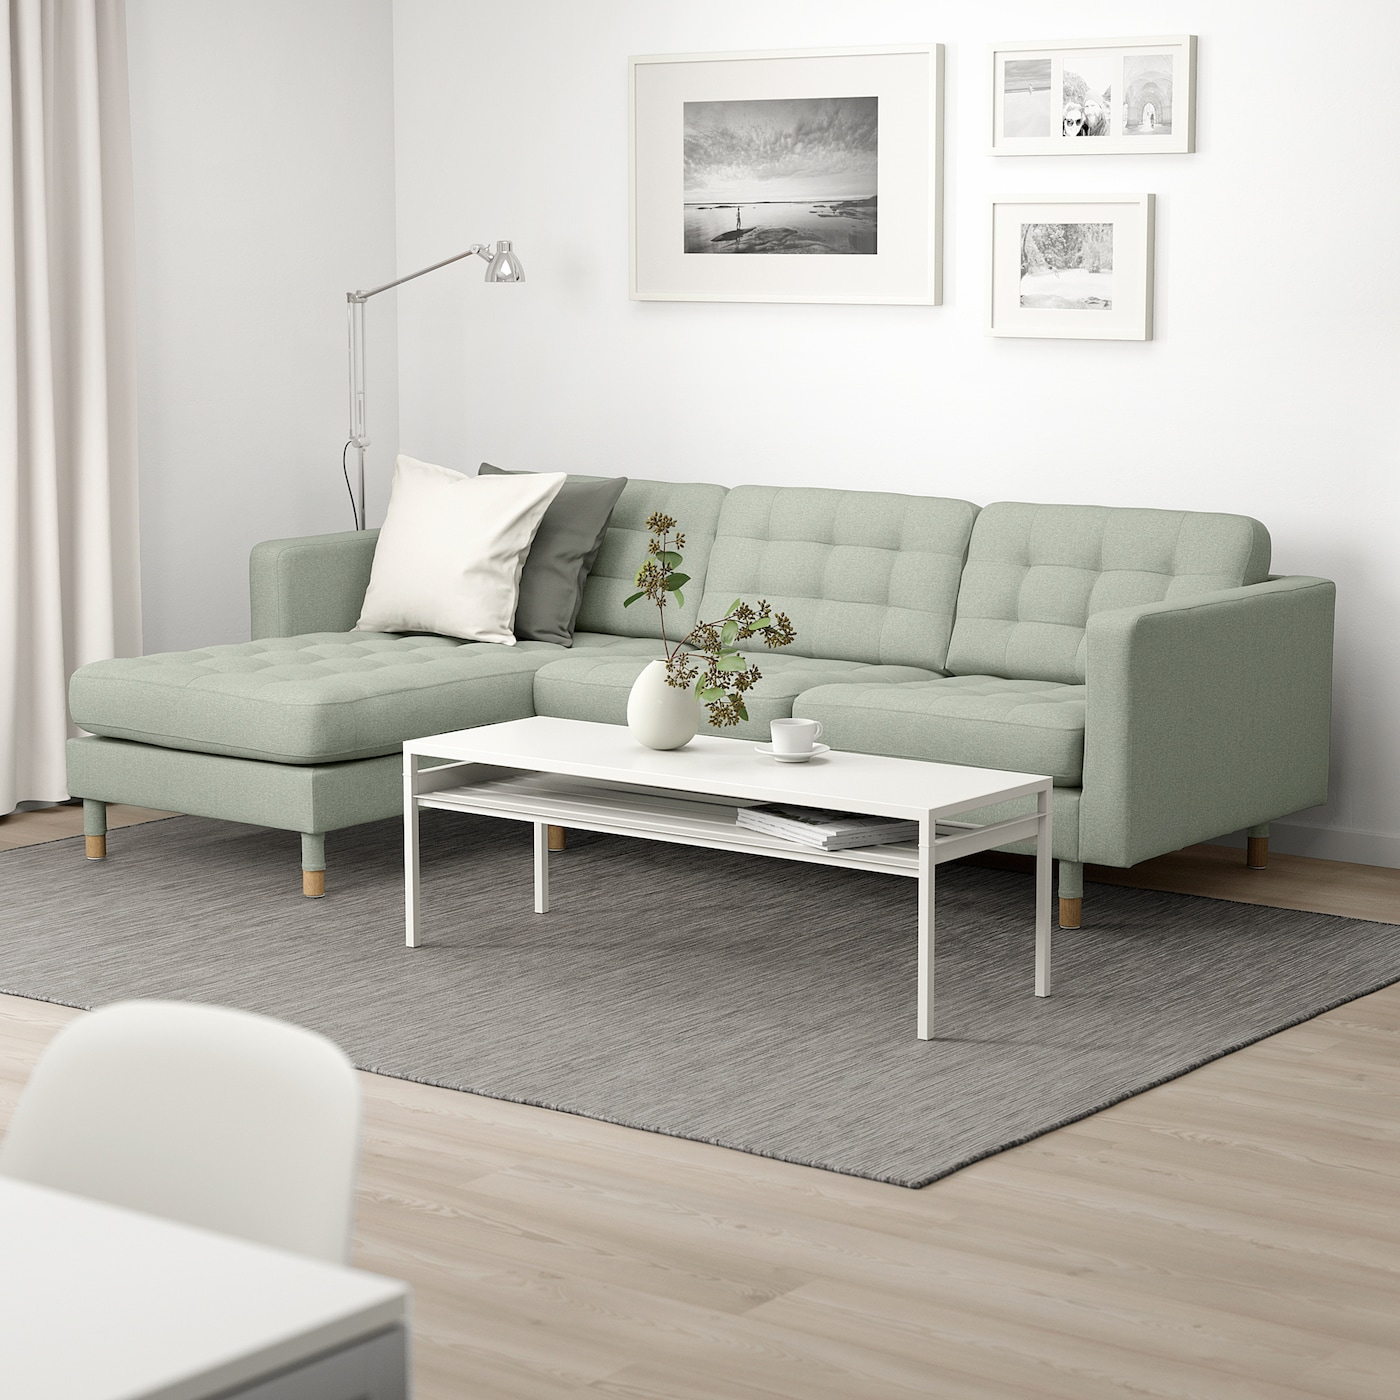 Landskrona 3 Seat Sofa With Chaise Longue Gunnared Light Green Wood Ikea